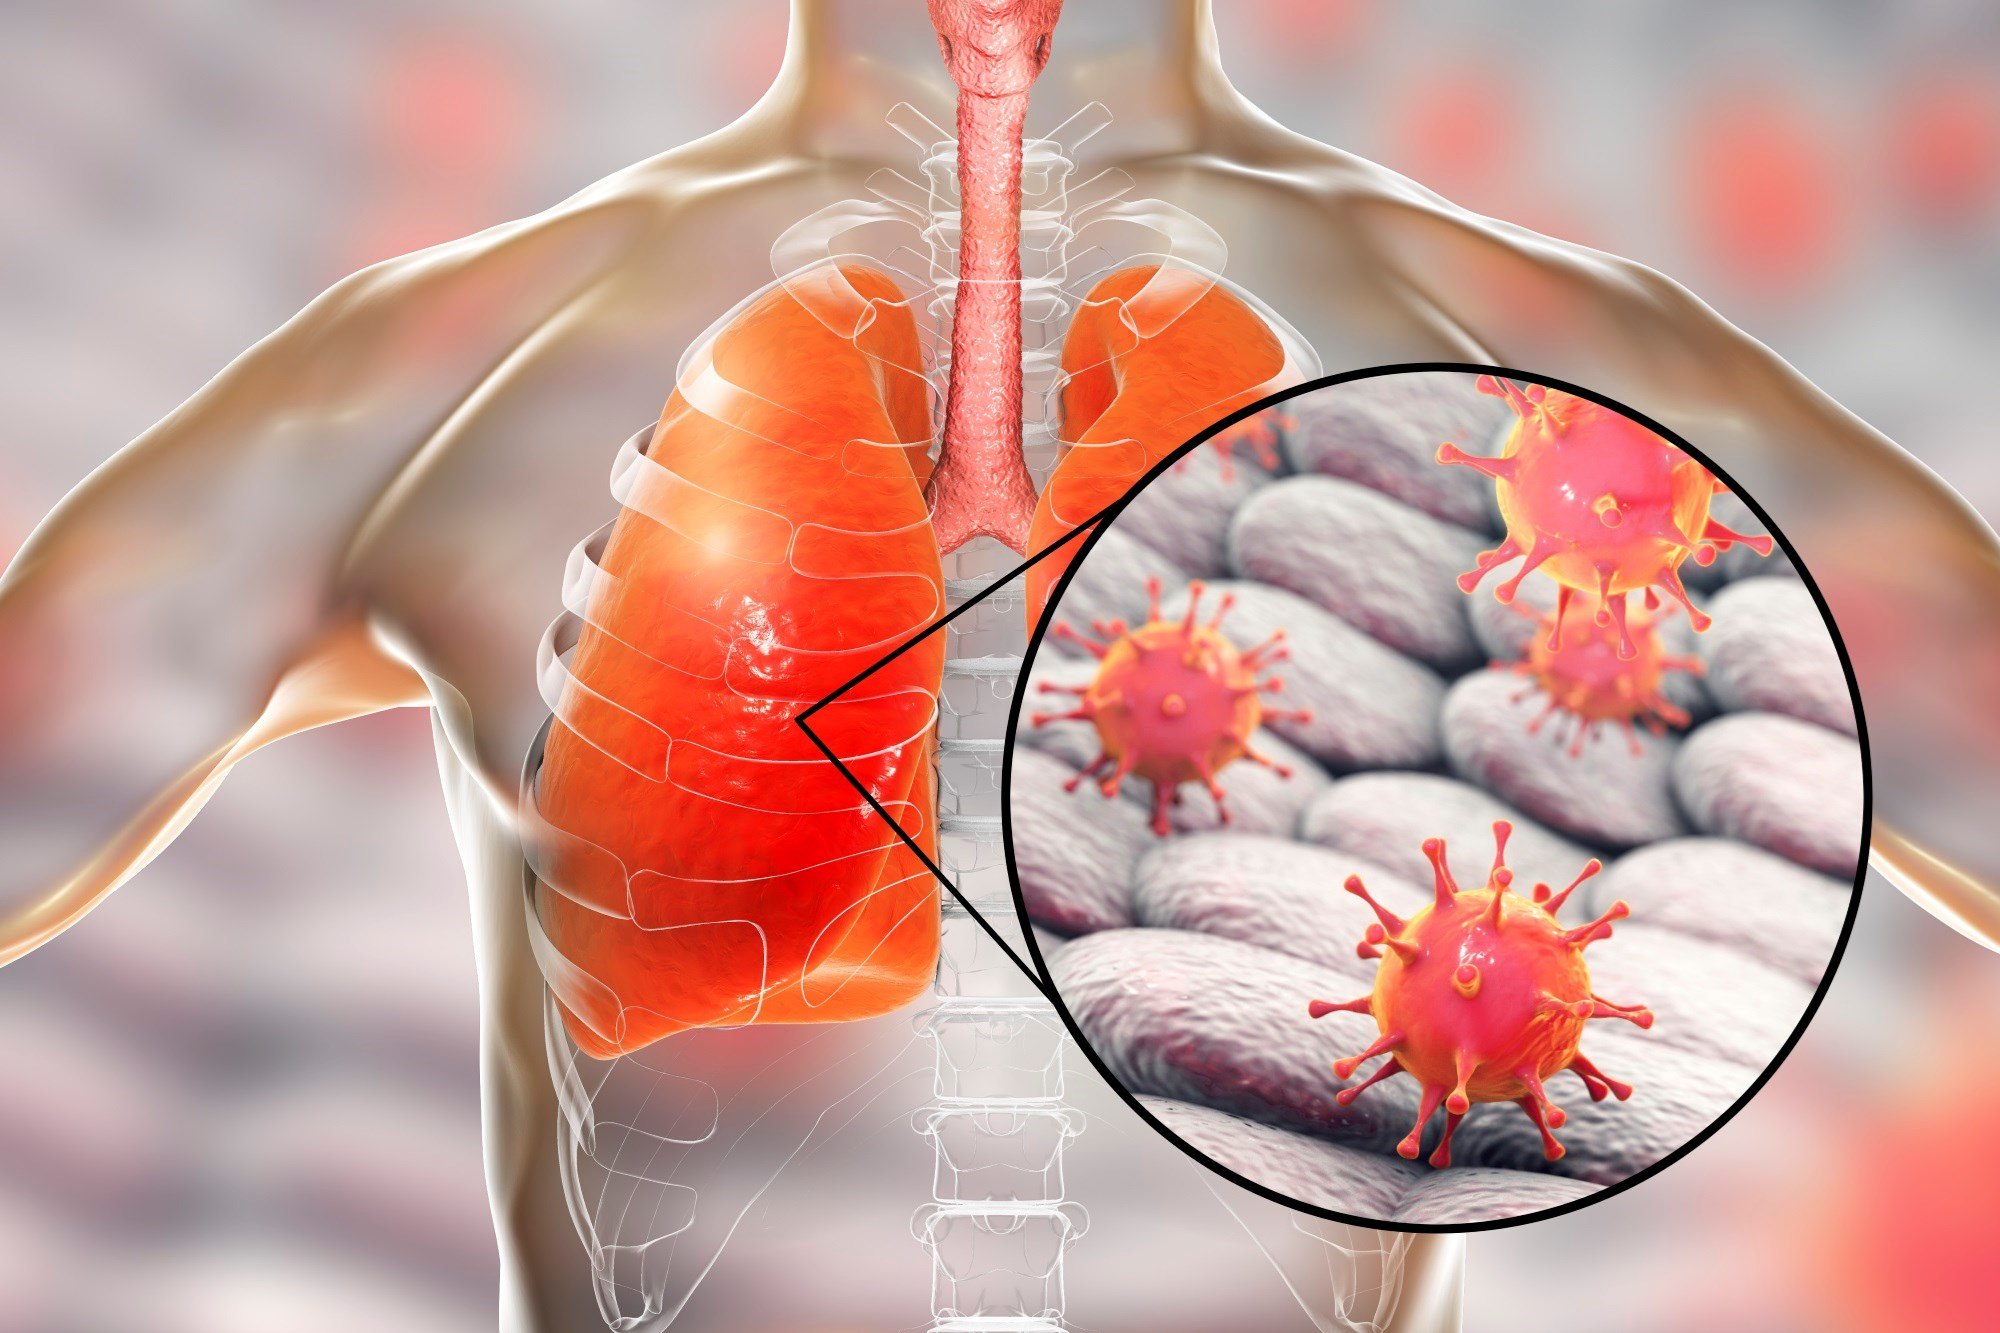 Respiratory viral testing is important to improve patient outcomes in adults who have severe lower respiratory tract infections as a result of viral pathogens.